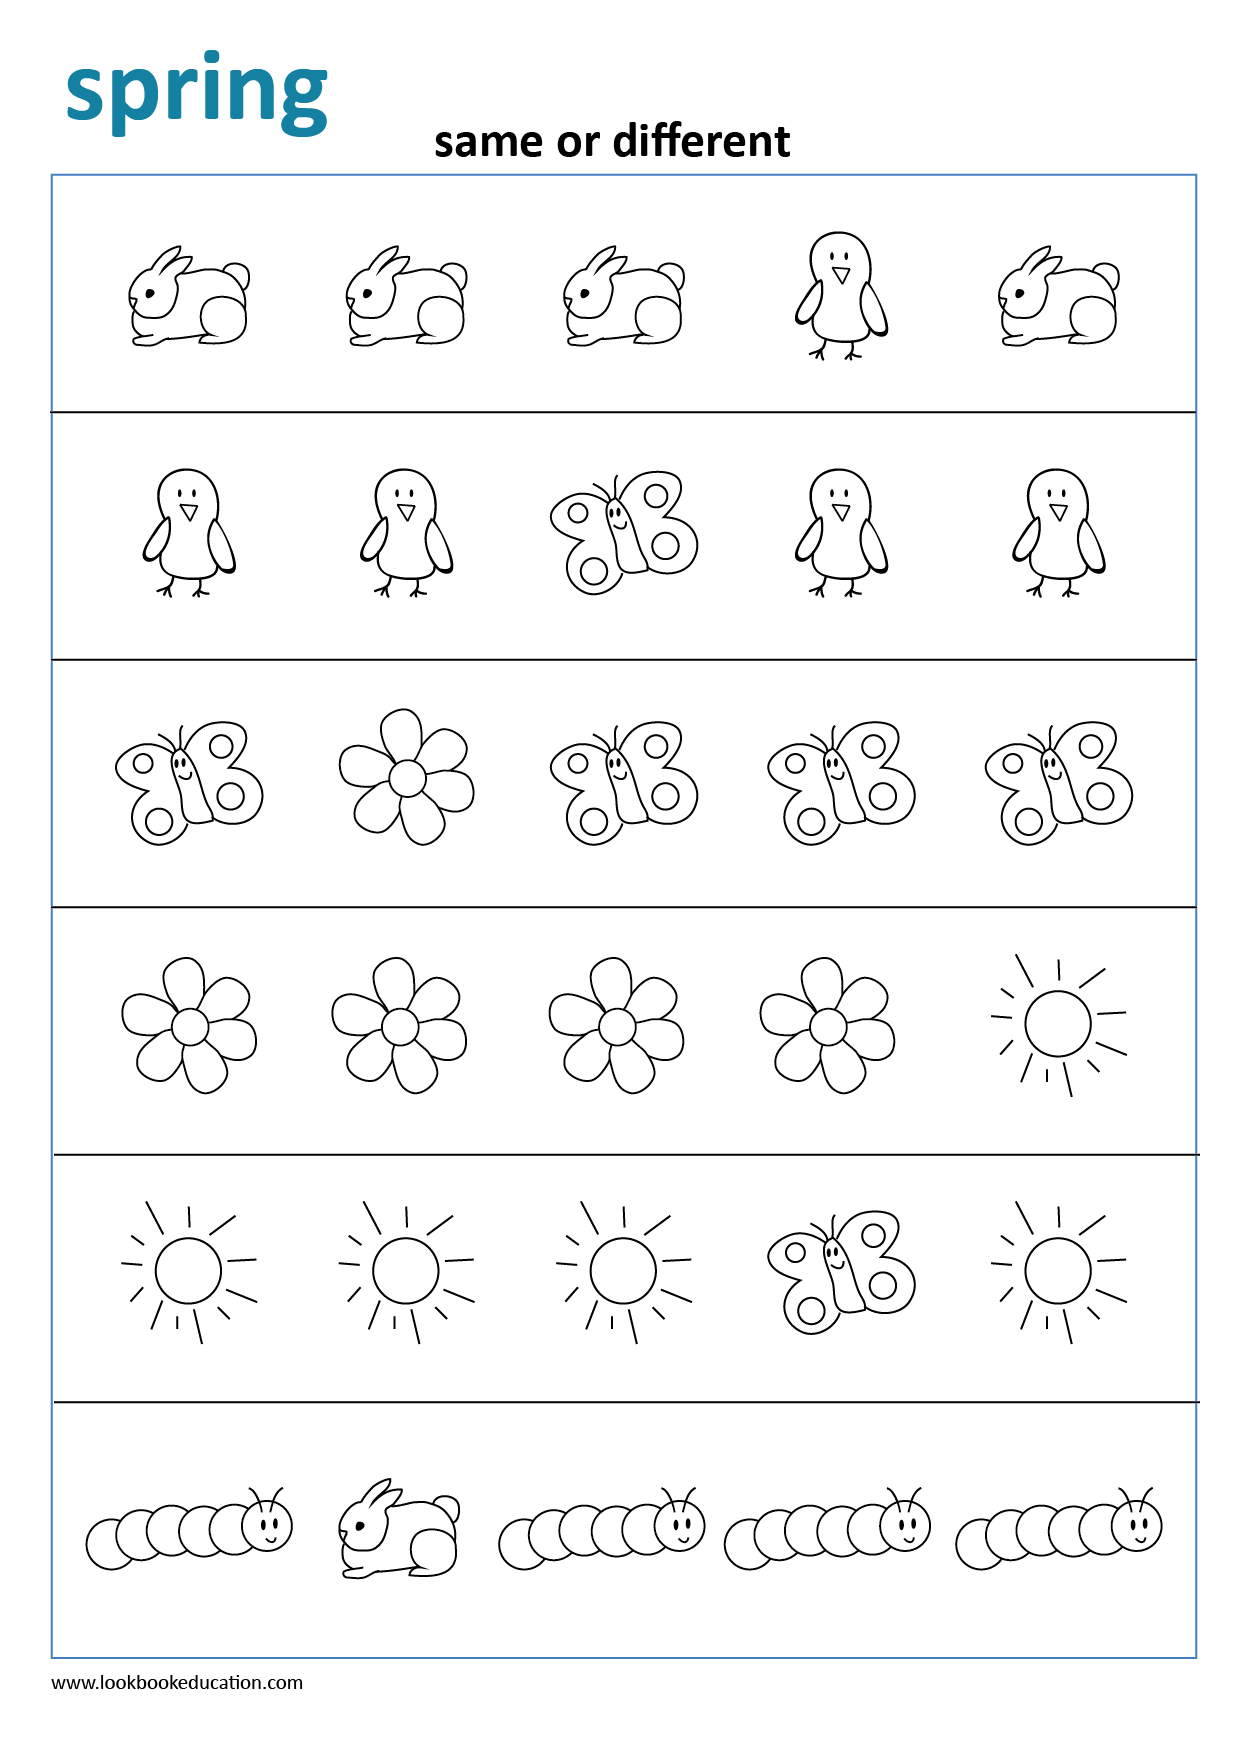 Worksheet Same Or Different Spring